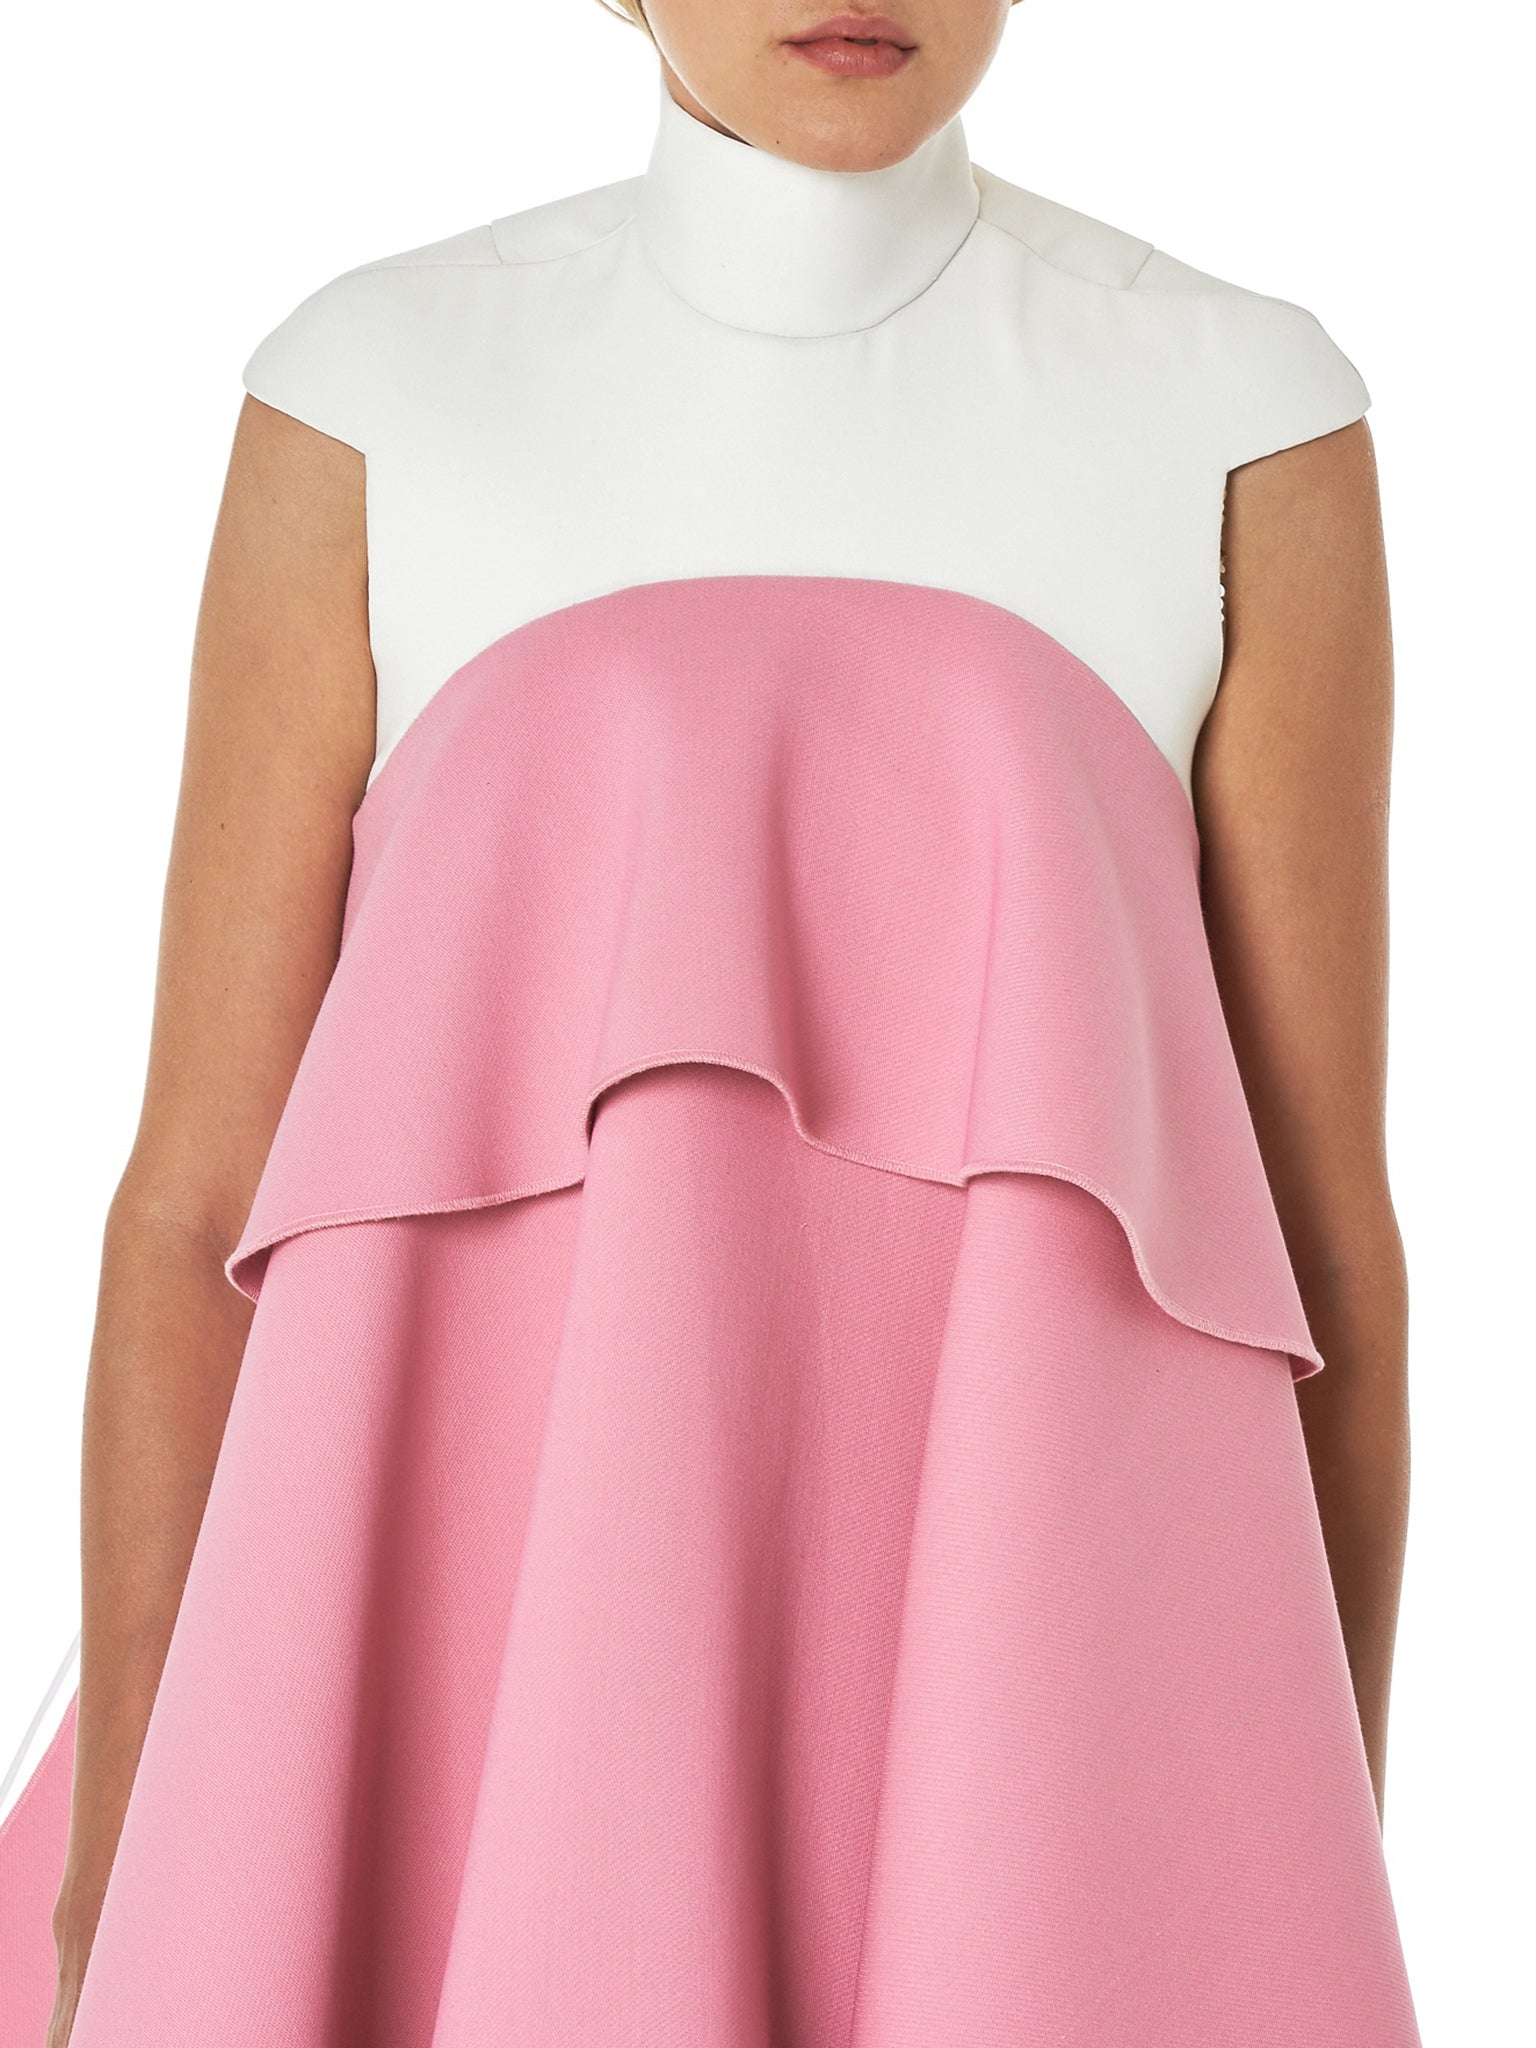 'Pedro' Apron Dress (PEDRO-PINK)